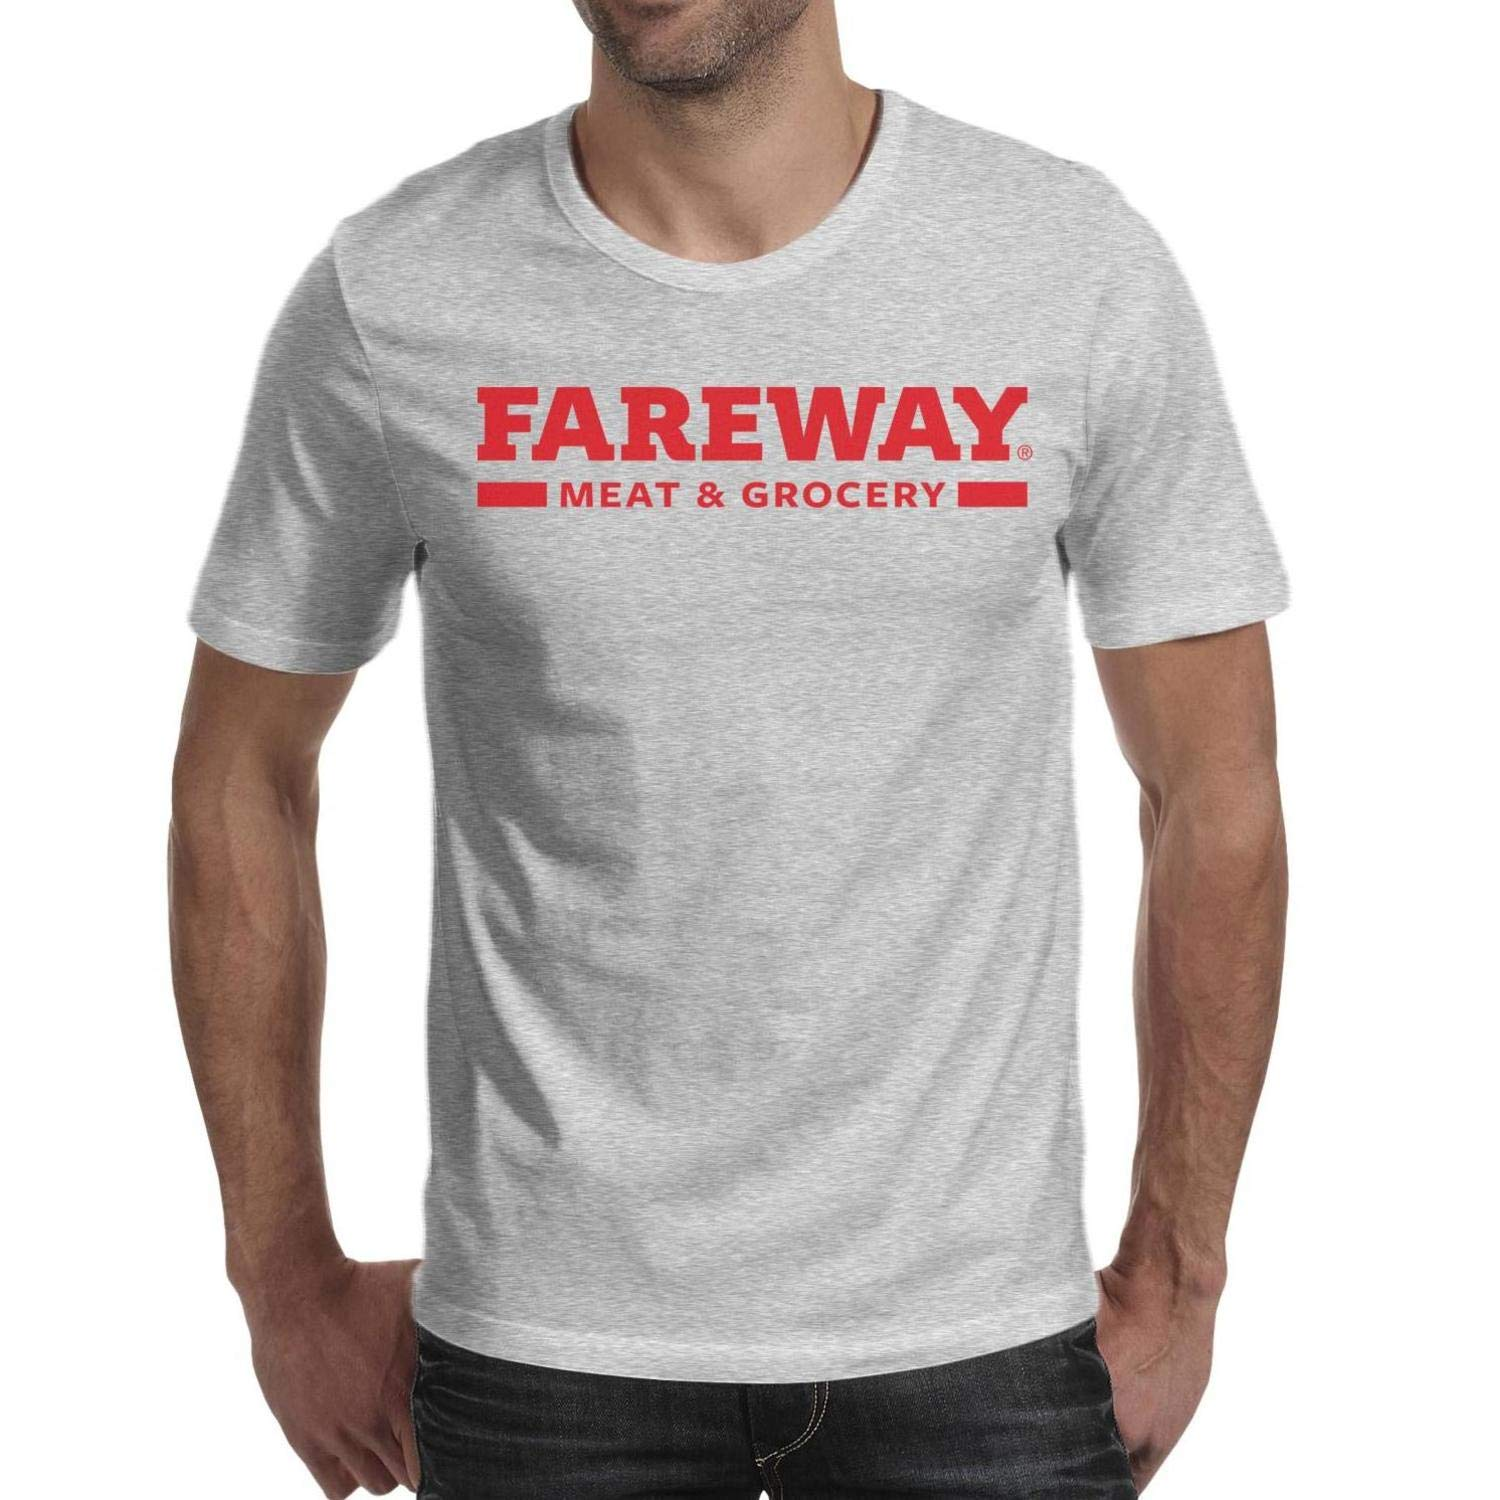 Fareway Launches New Logos Men Short Sleeve T Shirts 100% Cotton Funny Skin-Friendly T-Shirt by TUOUOUTR